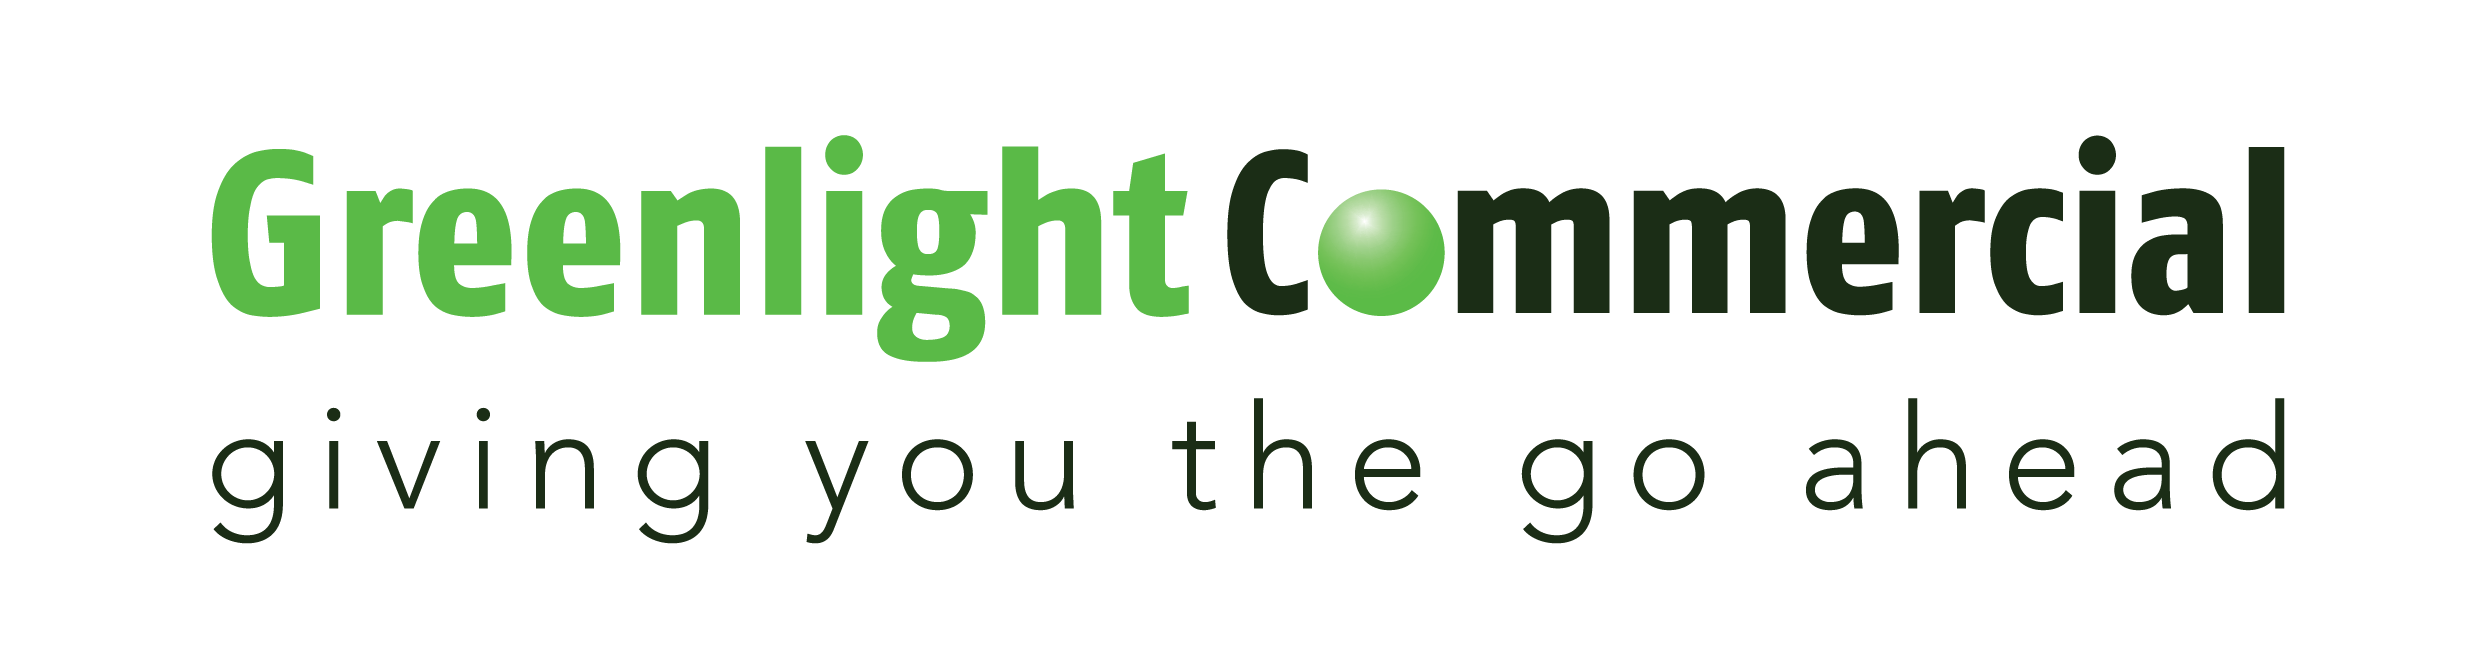 Greenlight Commercial